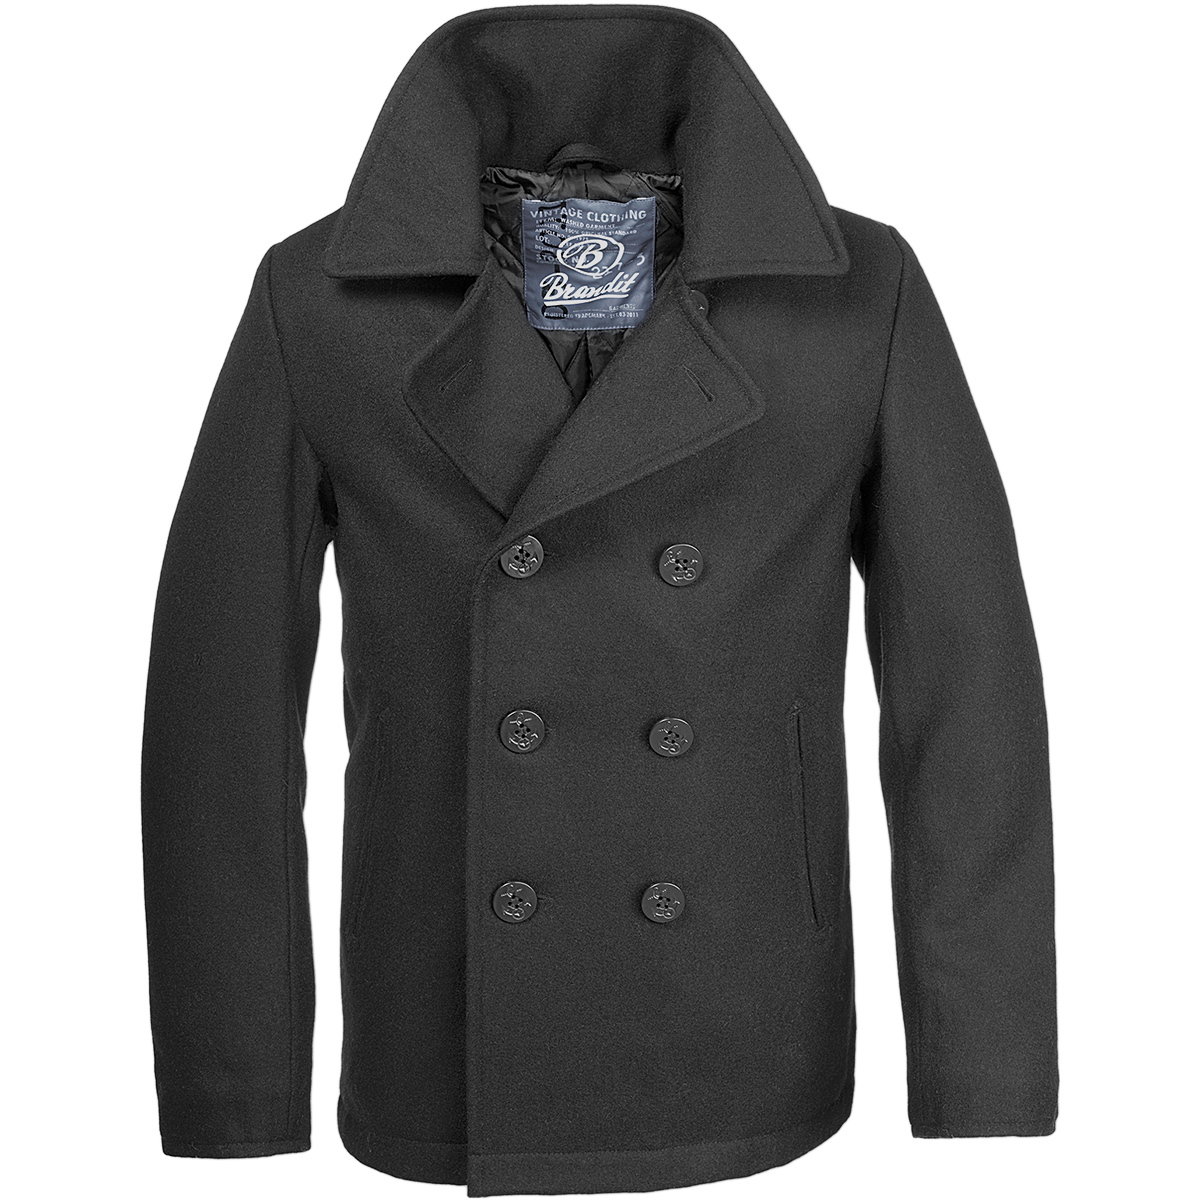 Mens US Navy Pea Coat | eBay